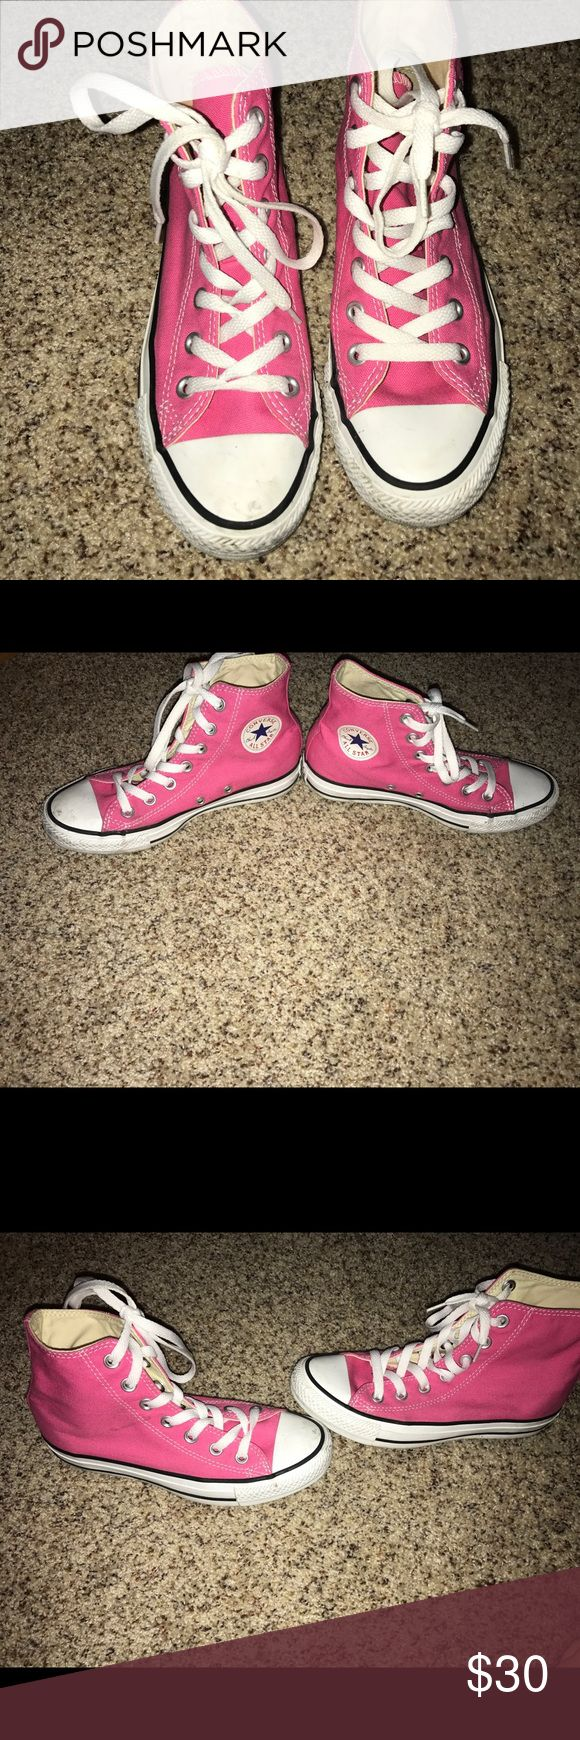 High top converse Pink high top converse. Worn twice. No flaws minor dirt scuff easy to remove with soap and water. Size 6. Originally 55. Converse Shoes Sneakers